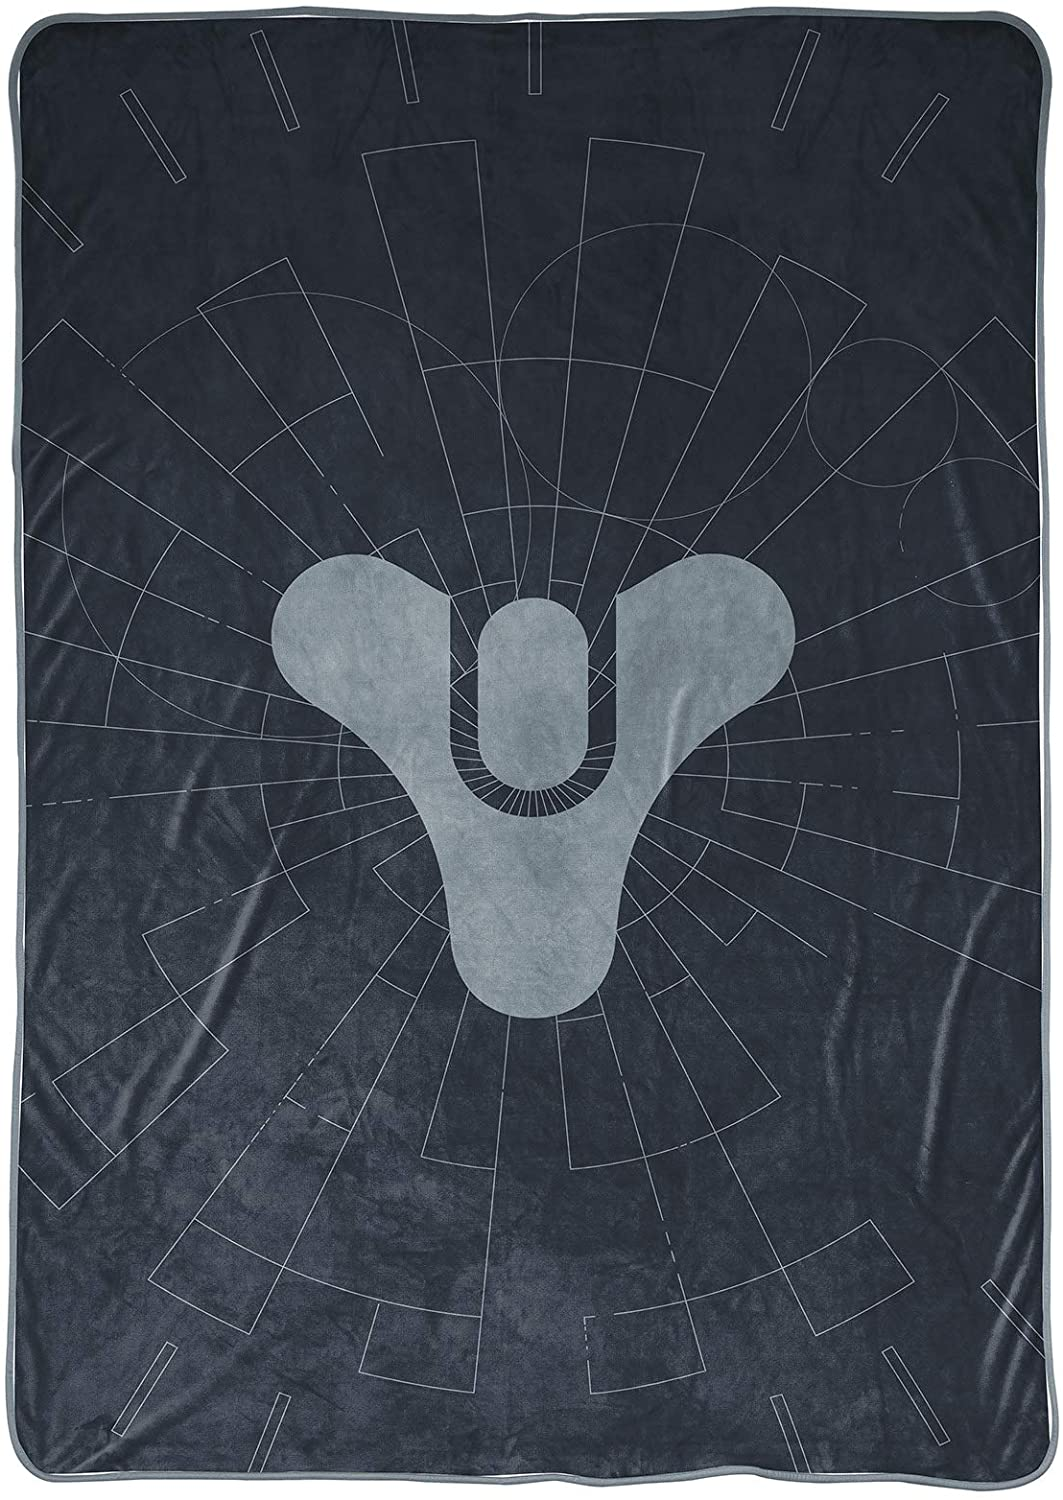 Measures 60 x 90 inches Fade Resistant Super Soft Fleece Official Destiny Product Bedding Jay Franco Destiny Tricorn Blanket